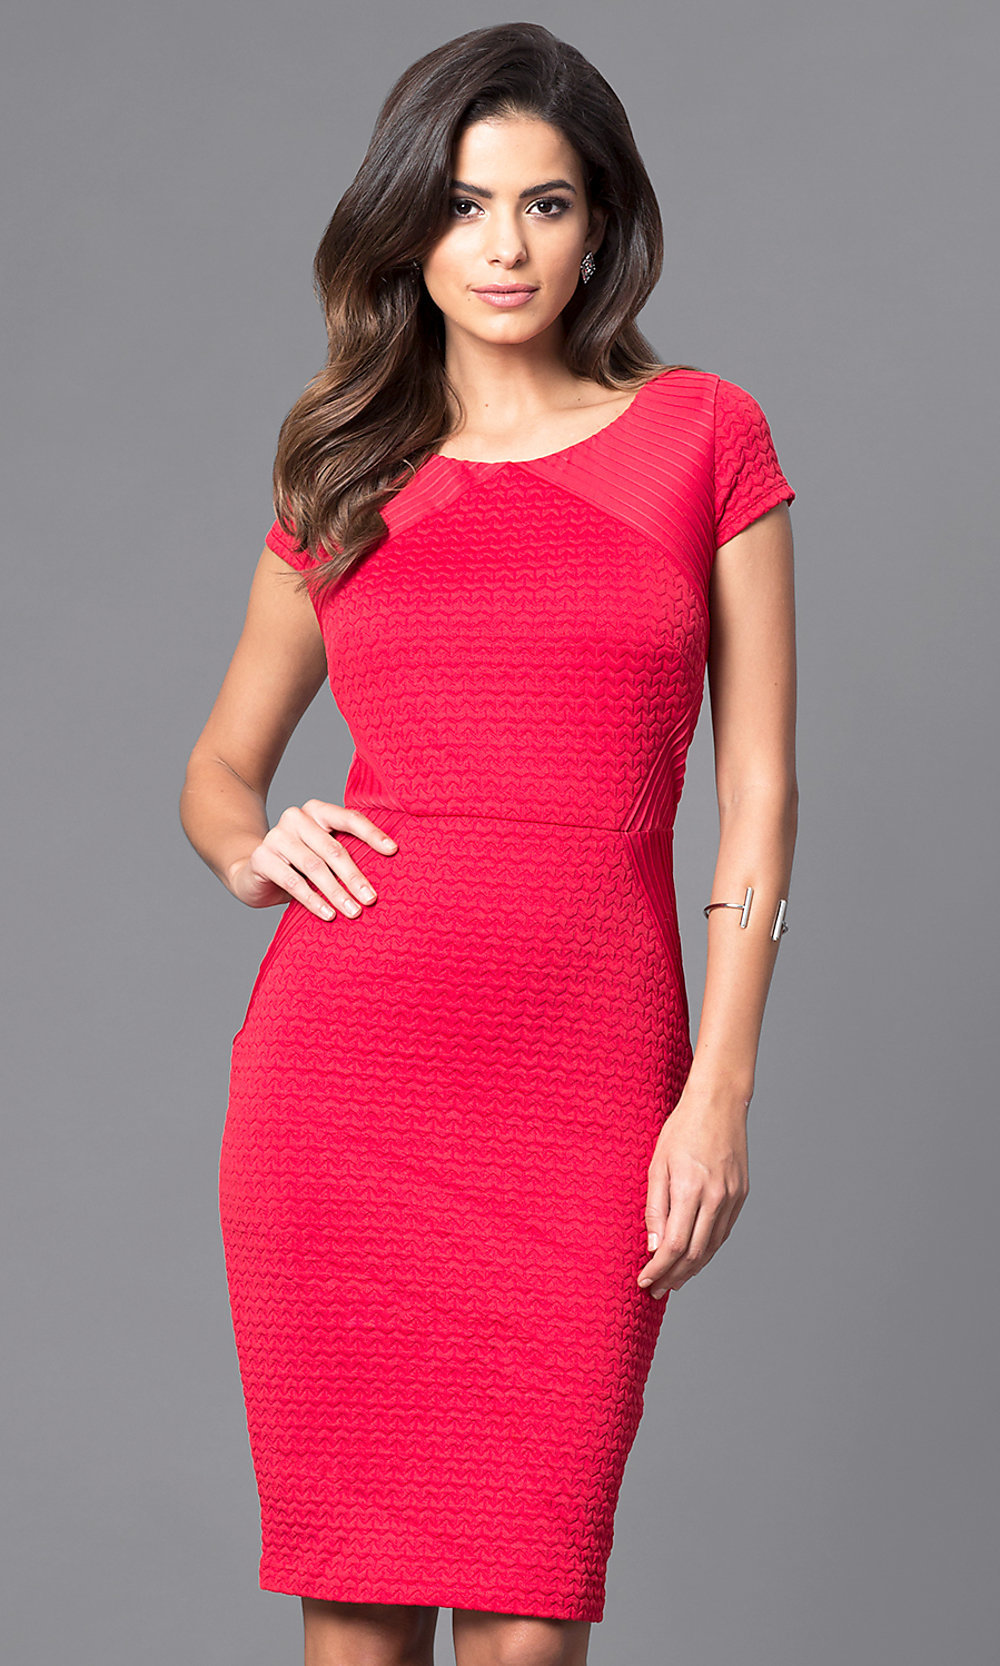 red daytonight party dress with sleeves promgirl